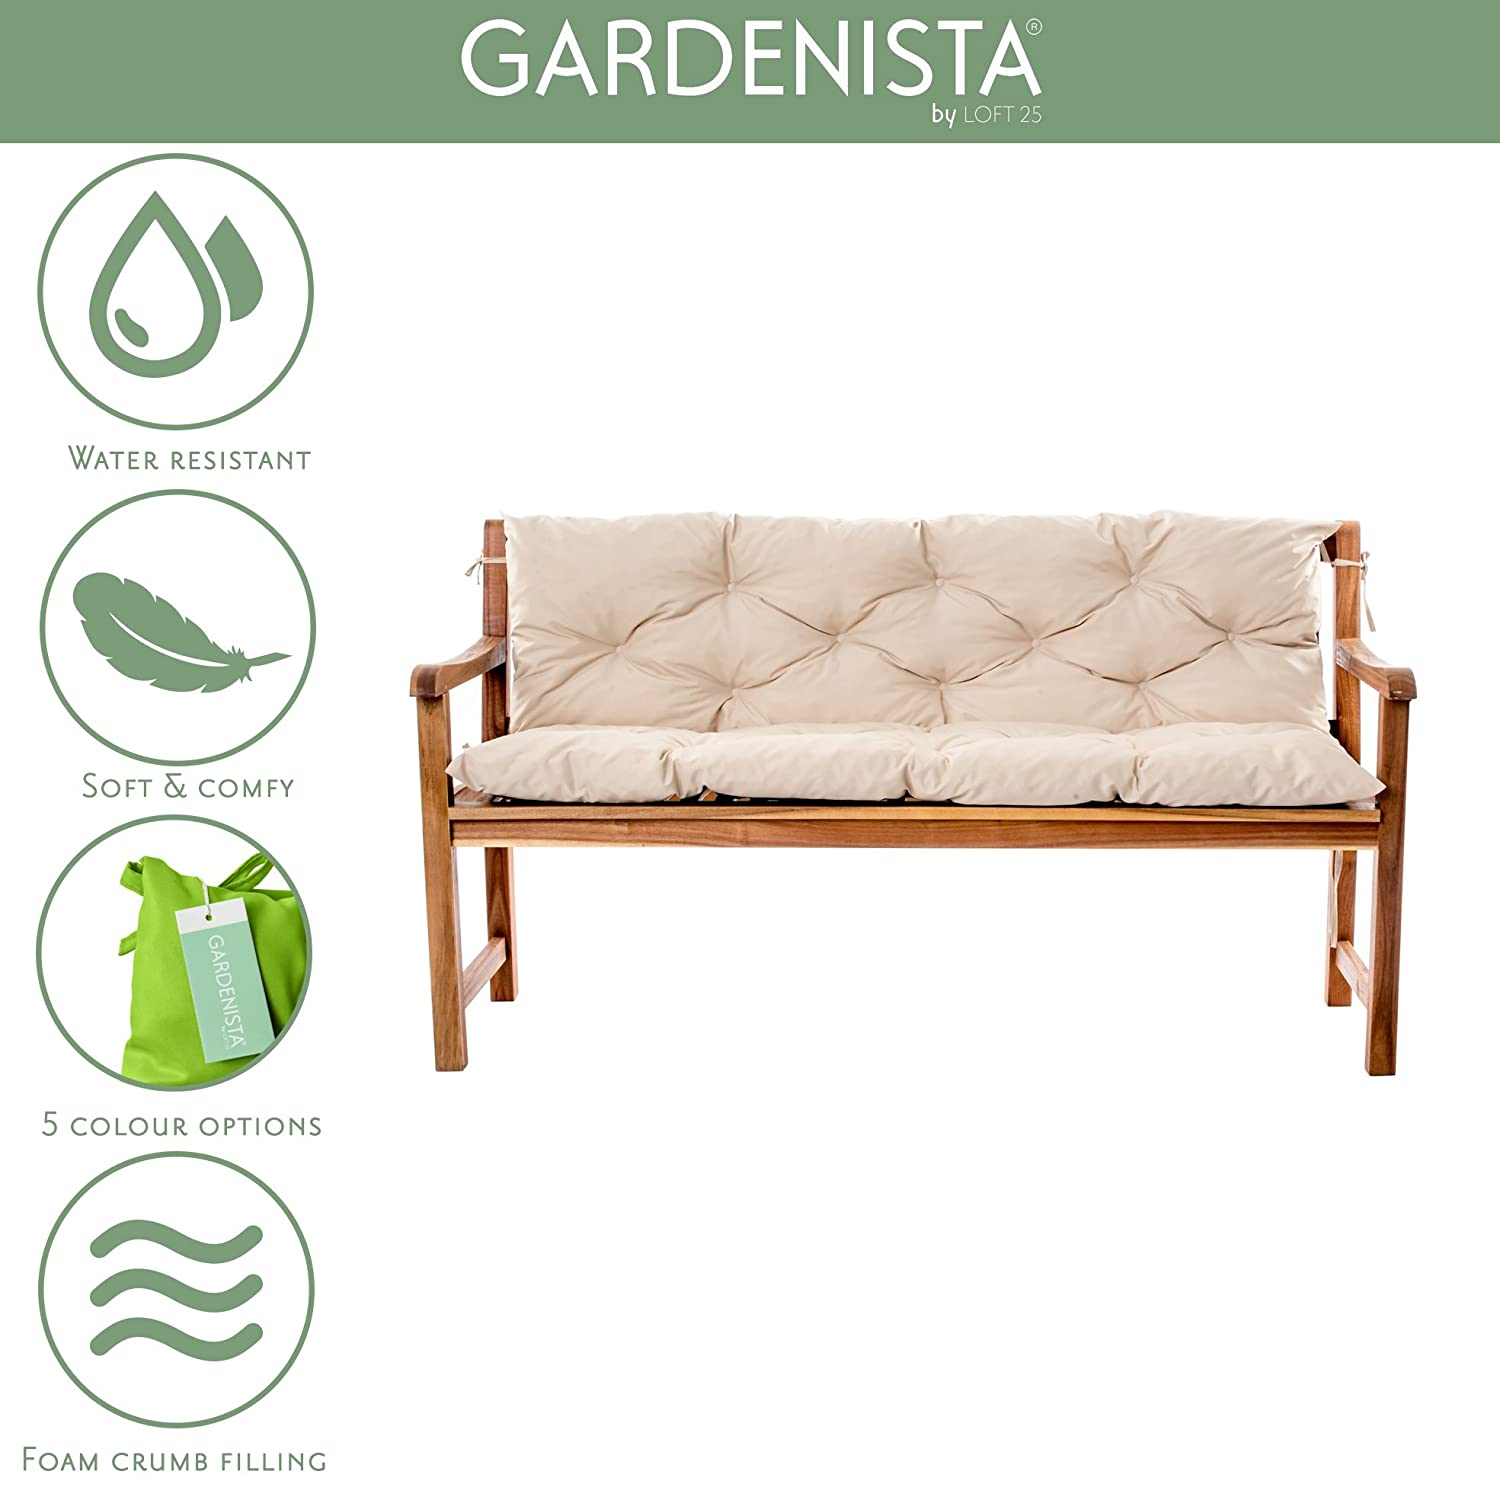 PURPLE Gardenista Water Resistant Outdoor Garden 2 Seater Bench Backrest Cushion Made in the UK L110cm x D45cm x T7cm Tufted Cushions Collection